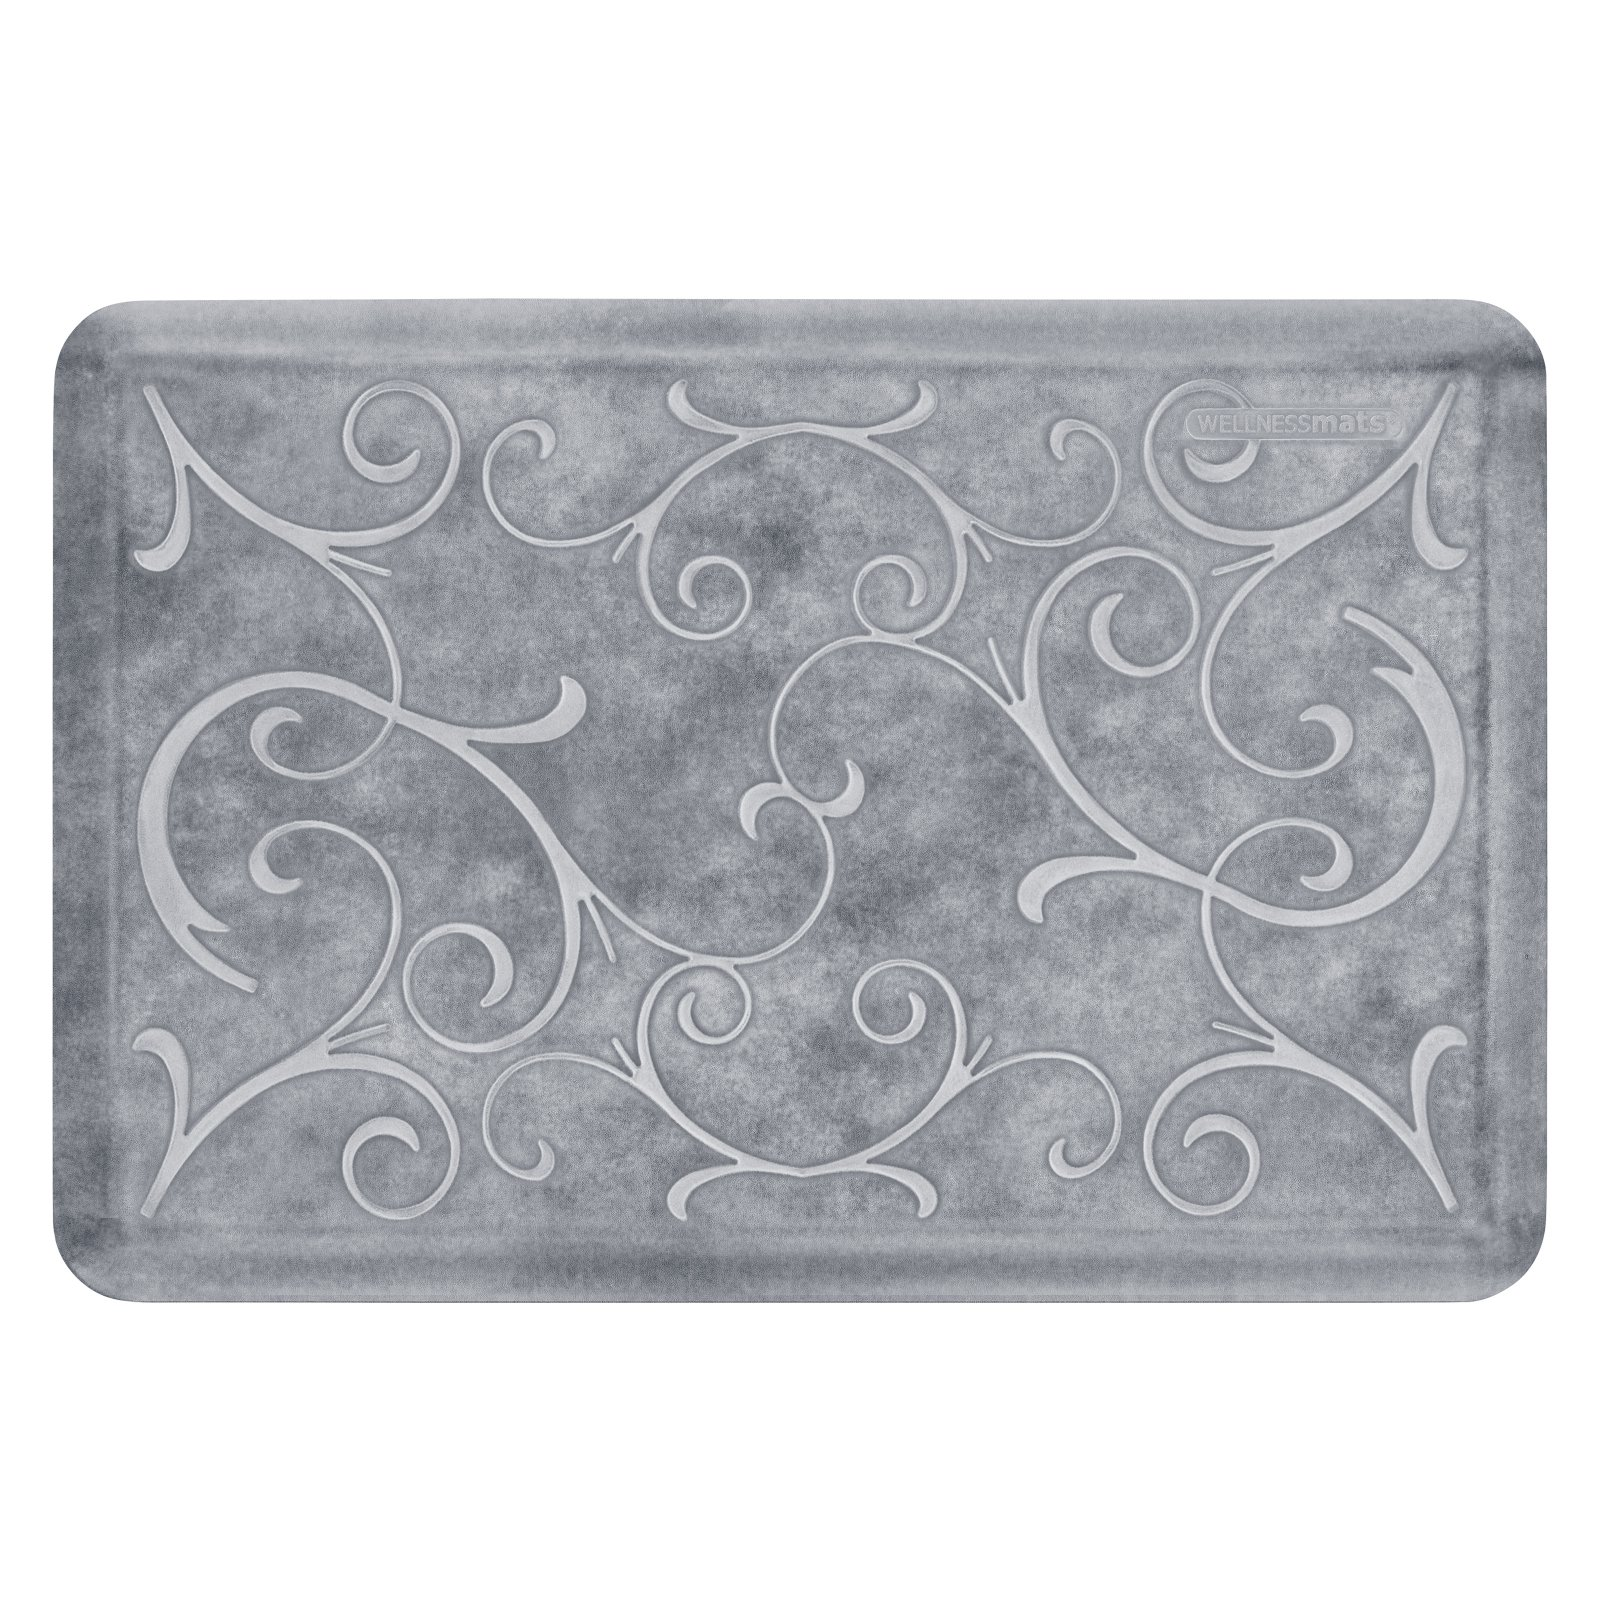 Wellness Mats Estates Bella Indoor Kitchen Mat